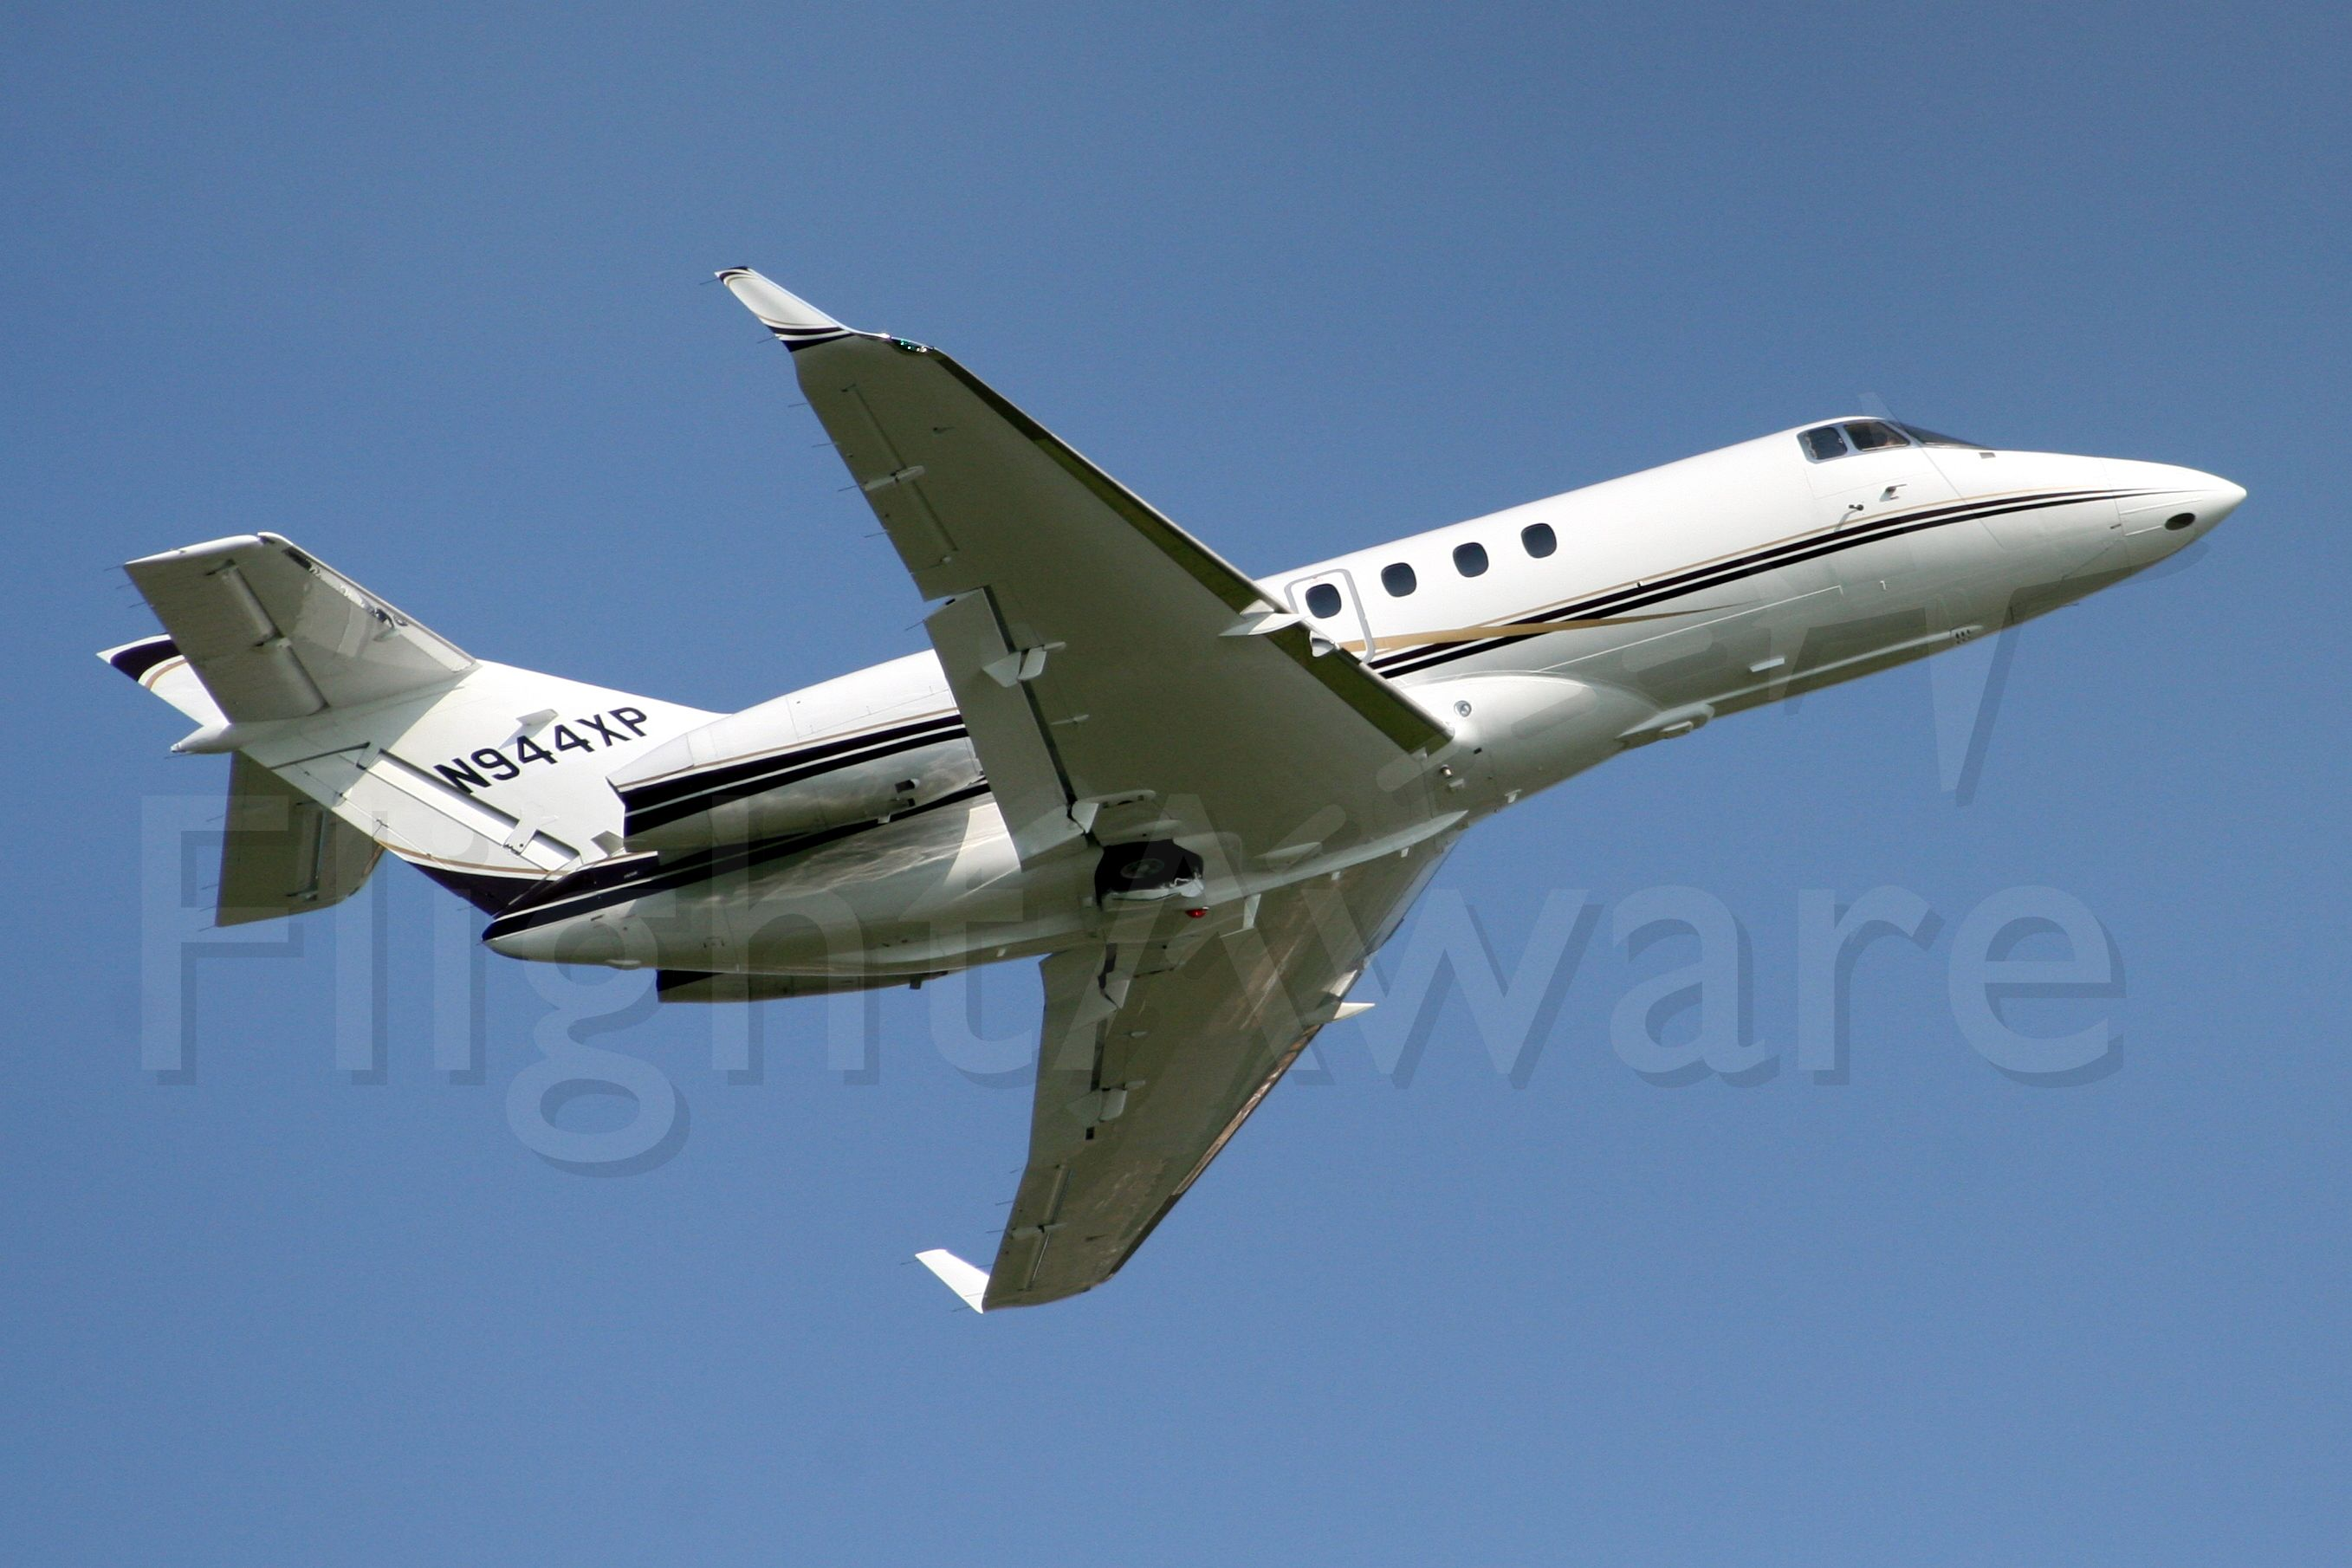 Raytheon Hawker 800 (N944XP) - Seen here on 22-May-08 became VH-EVF in Nov-08.